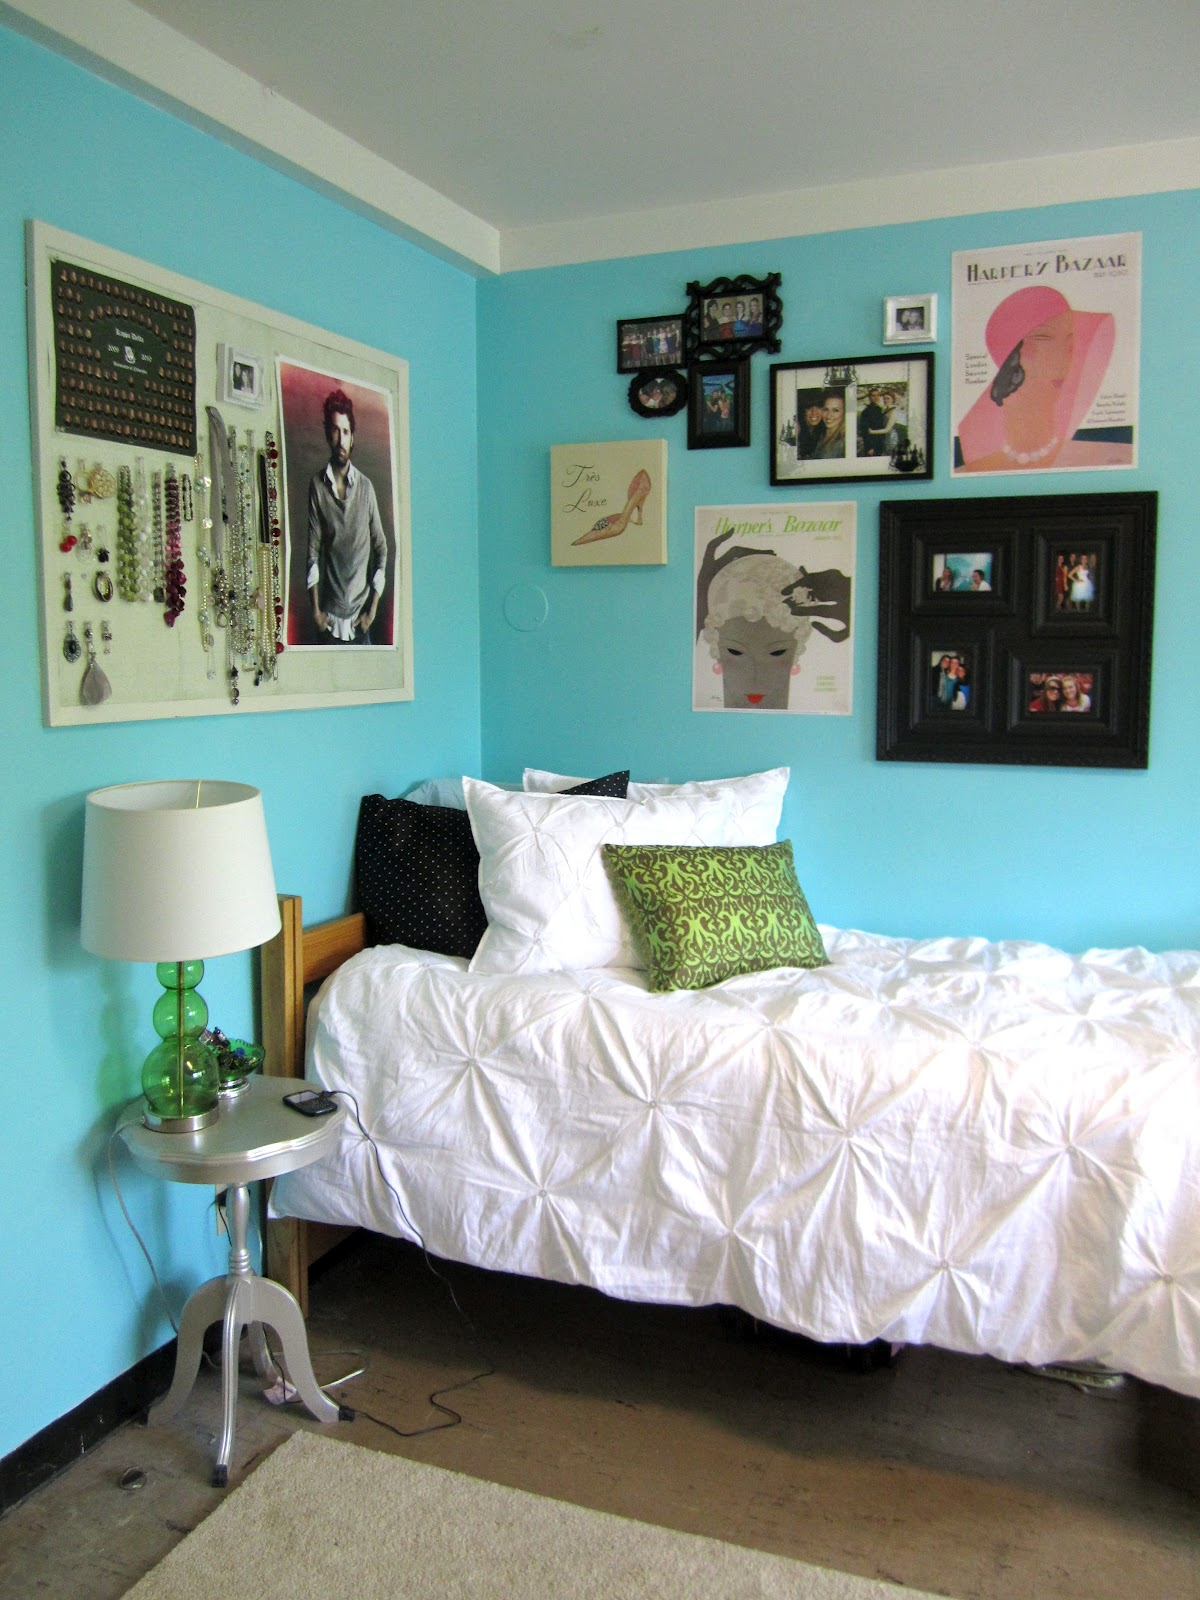 Dorm Room Ideas Maroone